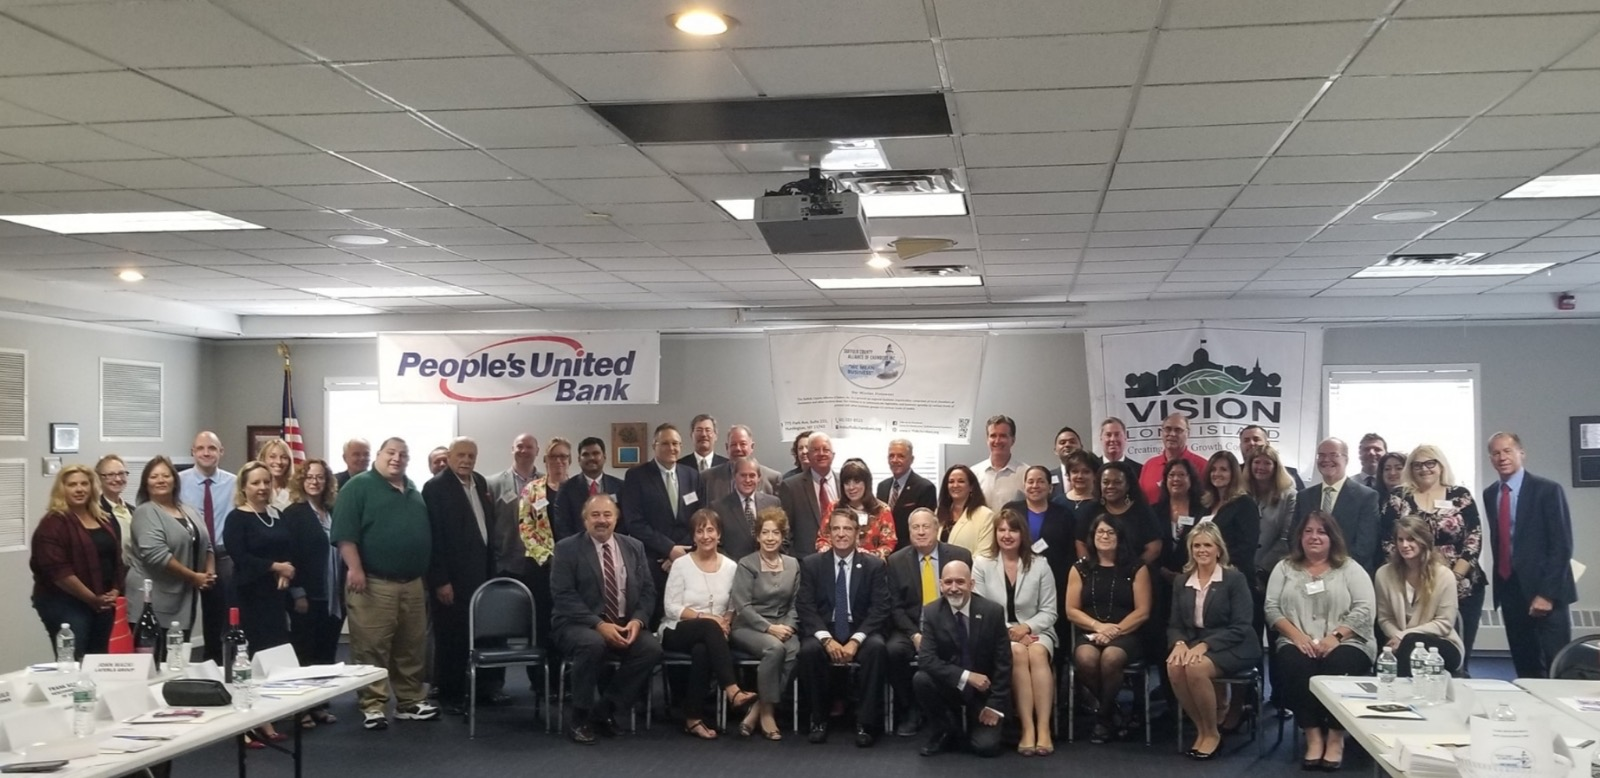 Annual Meeting Suffolk County Alliance of Chambers September 2019